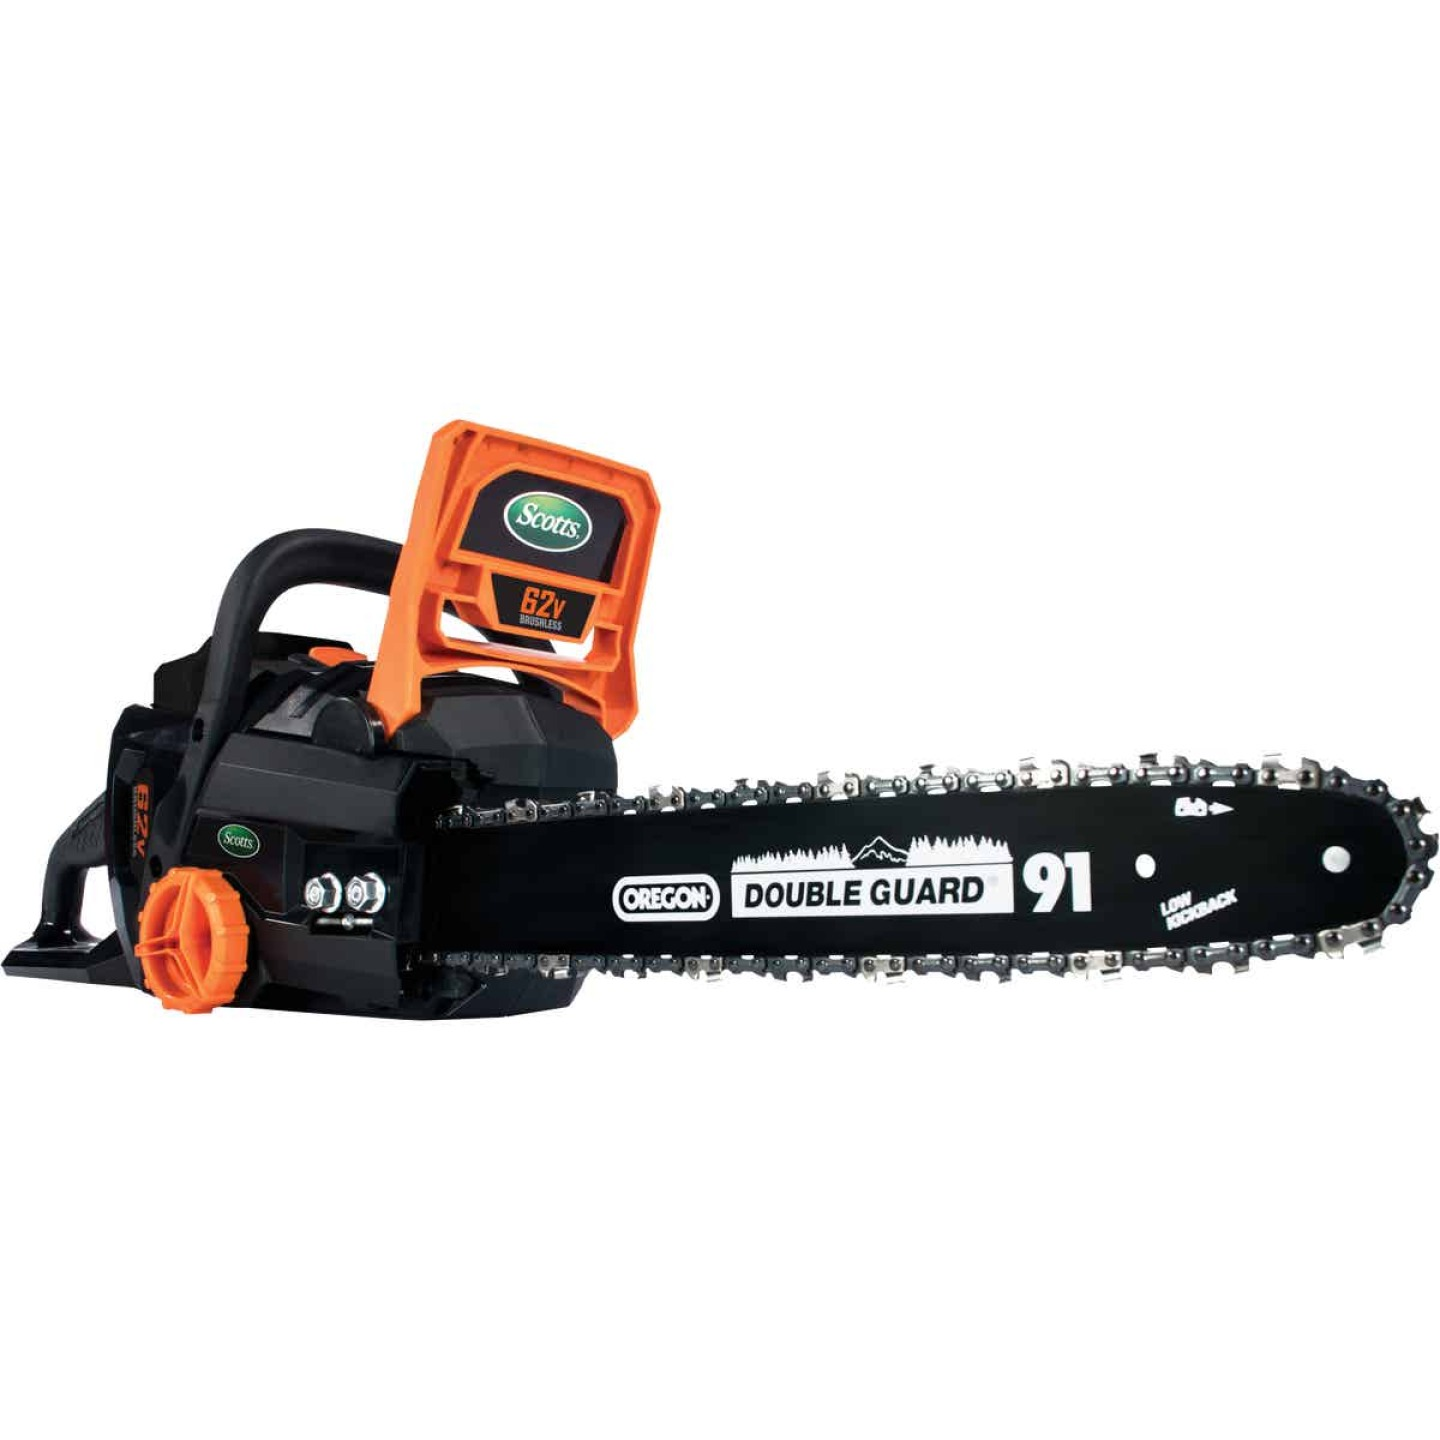 Scotts 16 In. 62 Volt Lithium Ion Cordless Chainsaw Image 1